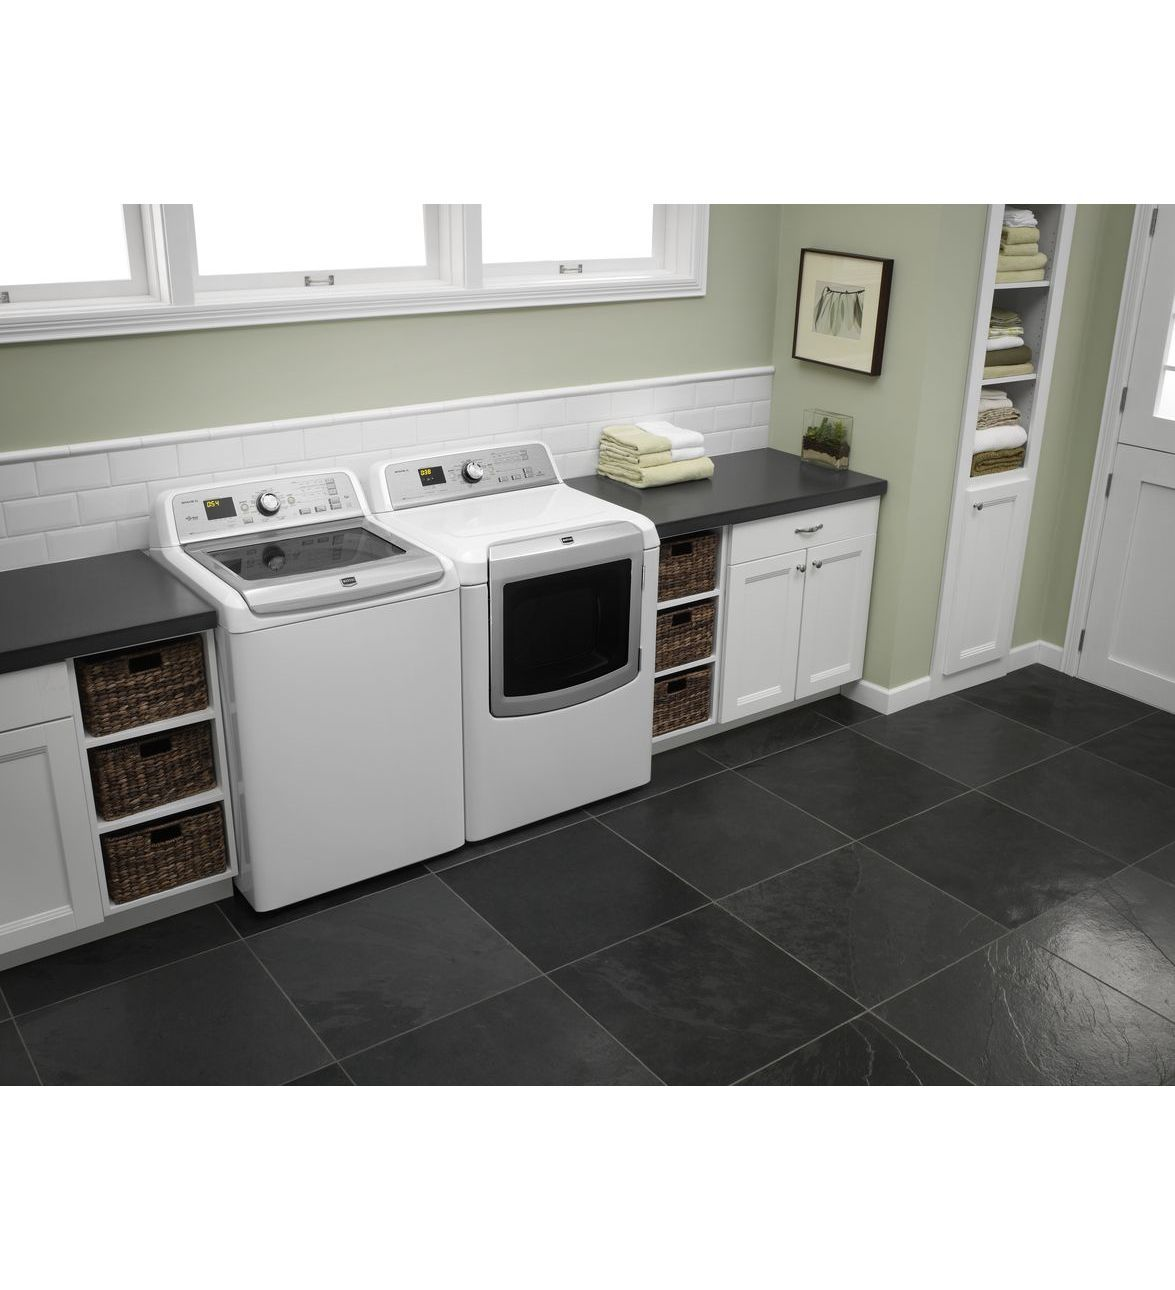 Bravos XLR HE Top Load Washer With White Mud RoomsLaundry